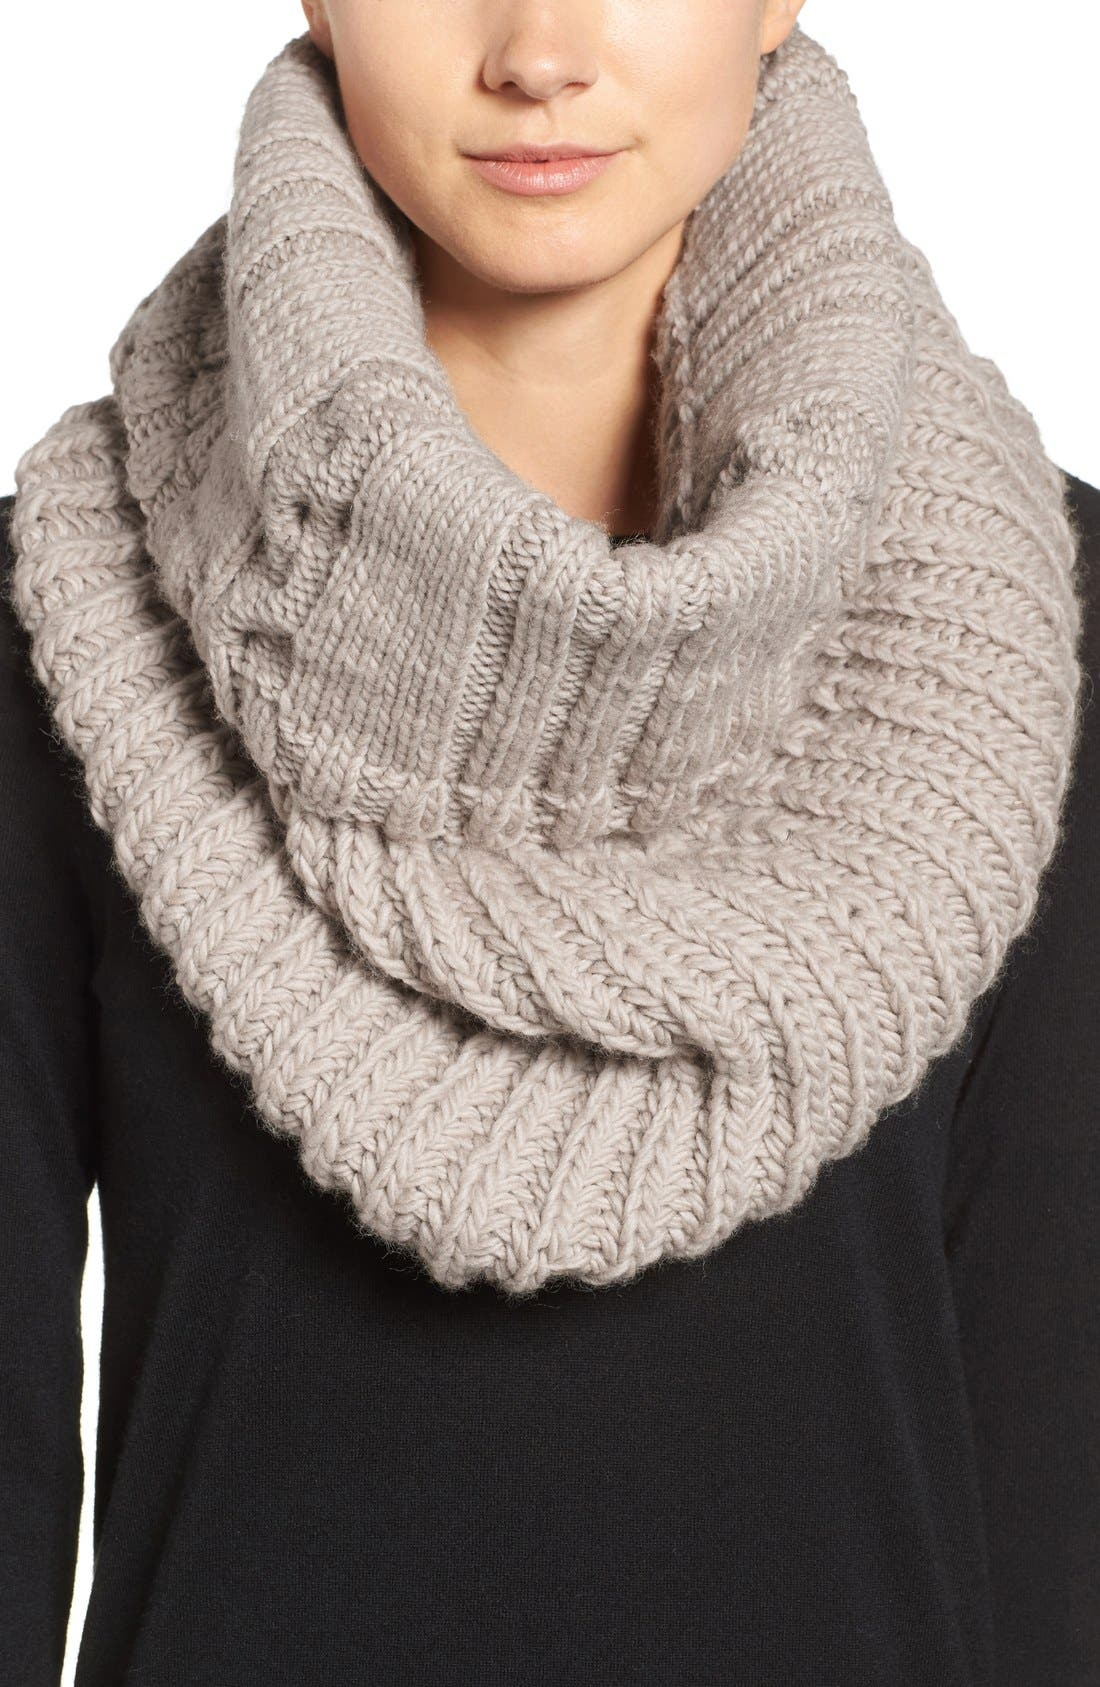 Main Image - Nirvanna Designs Oversize Cable Knit Wool Infinity Scarf